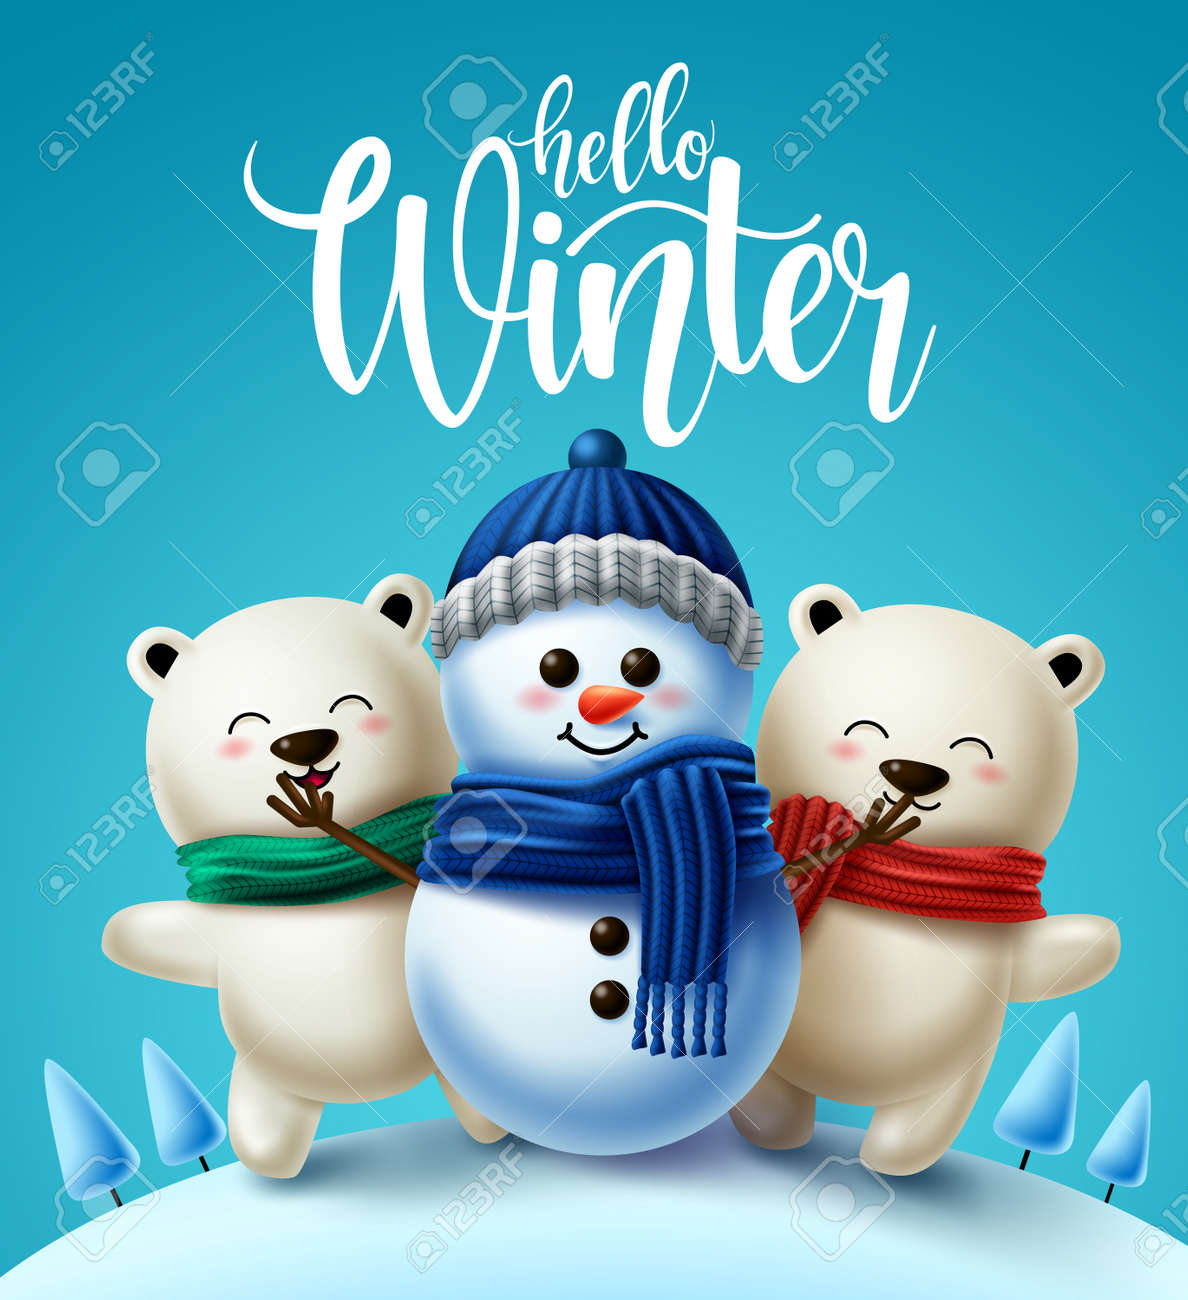 Winter characters vector background design. Hello winter greeting text with 3d snowman and polar bear character wearing scarf for winter holiday season. Vector illustration - 156882322